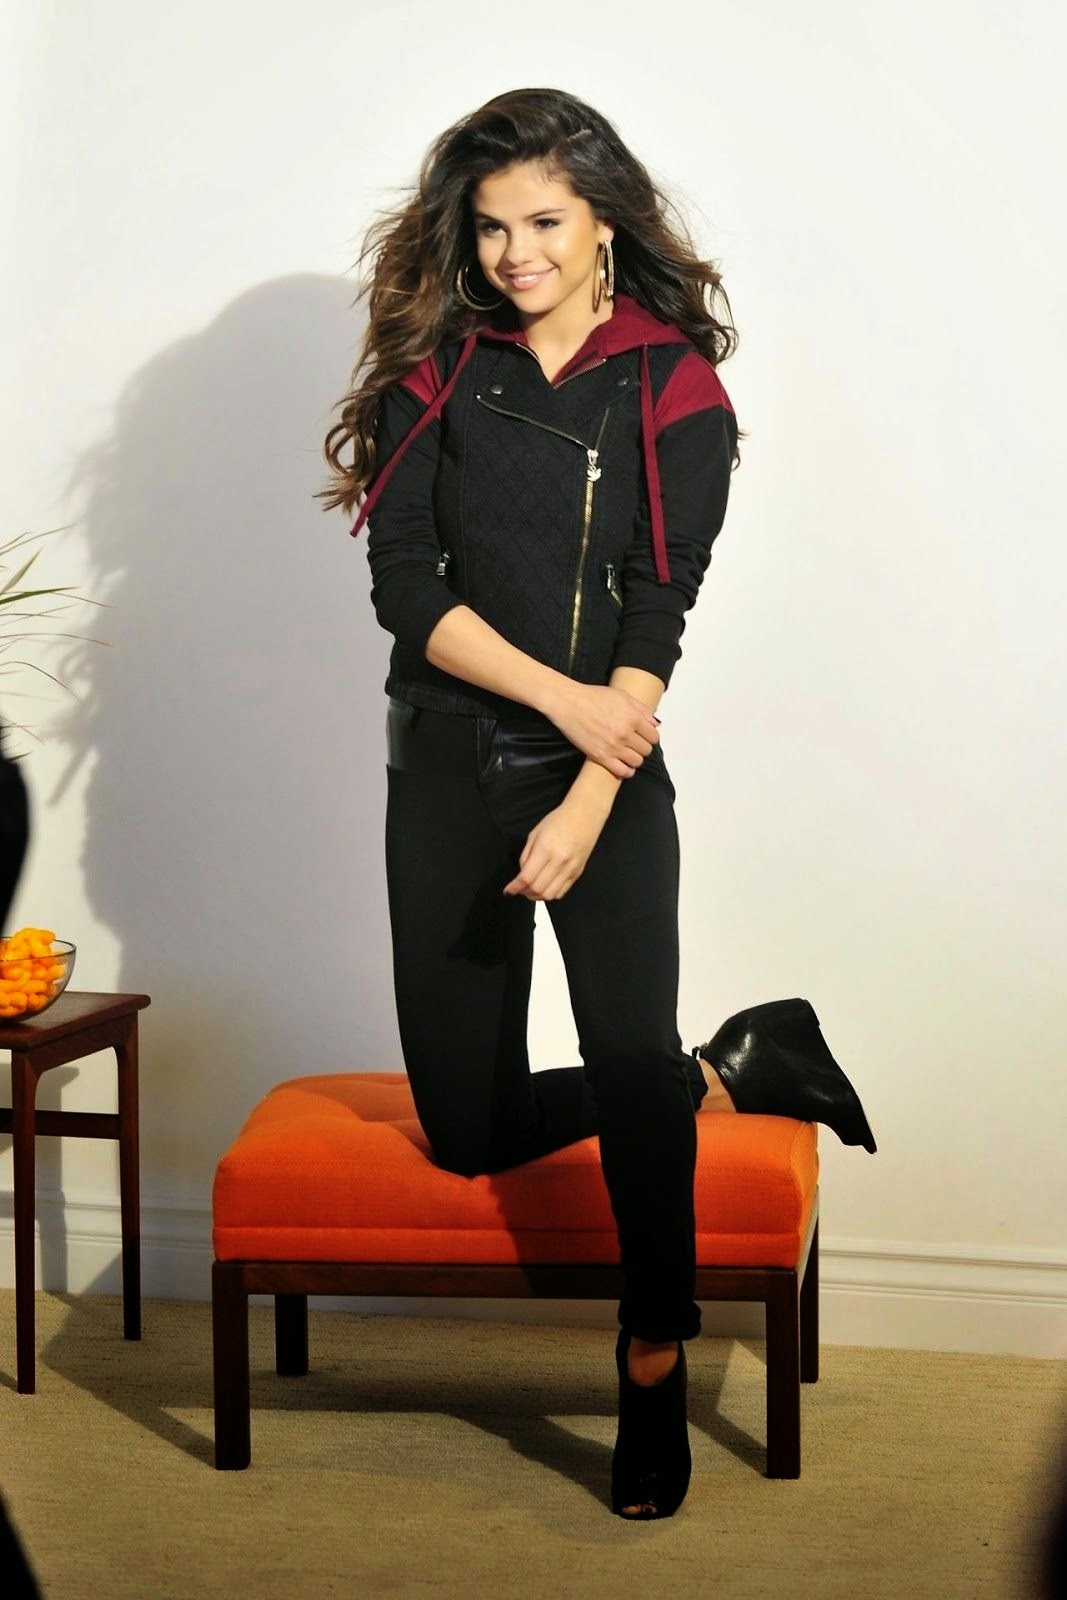 Selena Gomez Dream Out Loud FallWinter 2012-2013 Lookbook Selena Gomez Dream Out Loud FallWinter 2012-2013 Lookbook new pictures